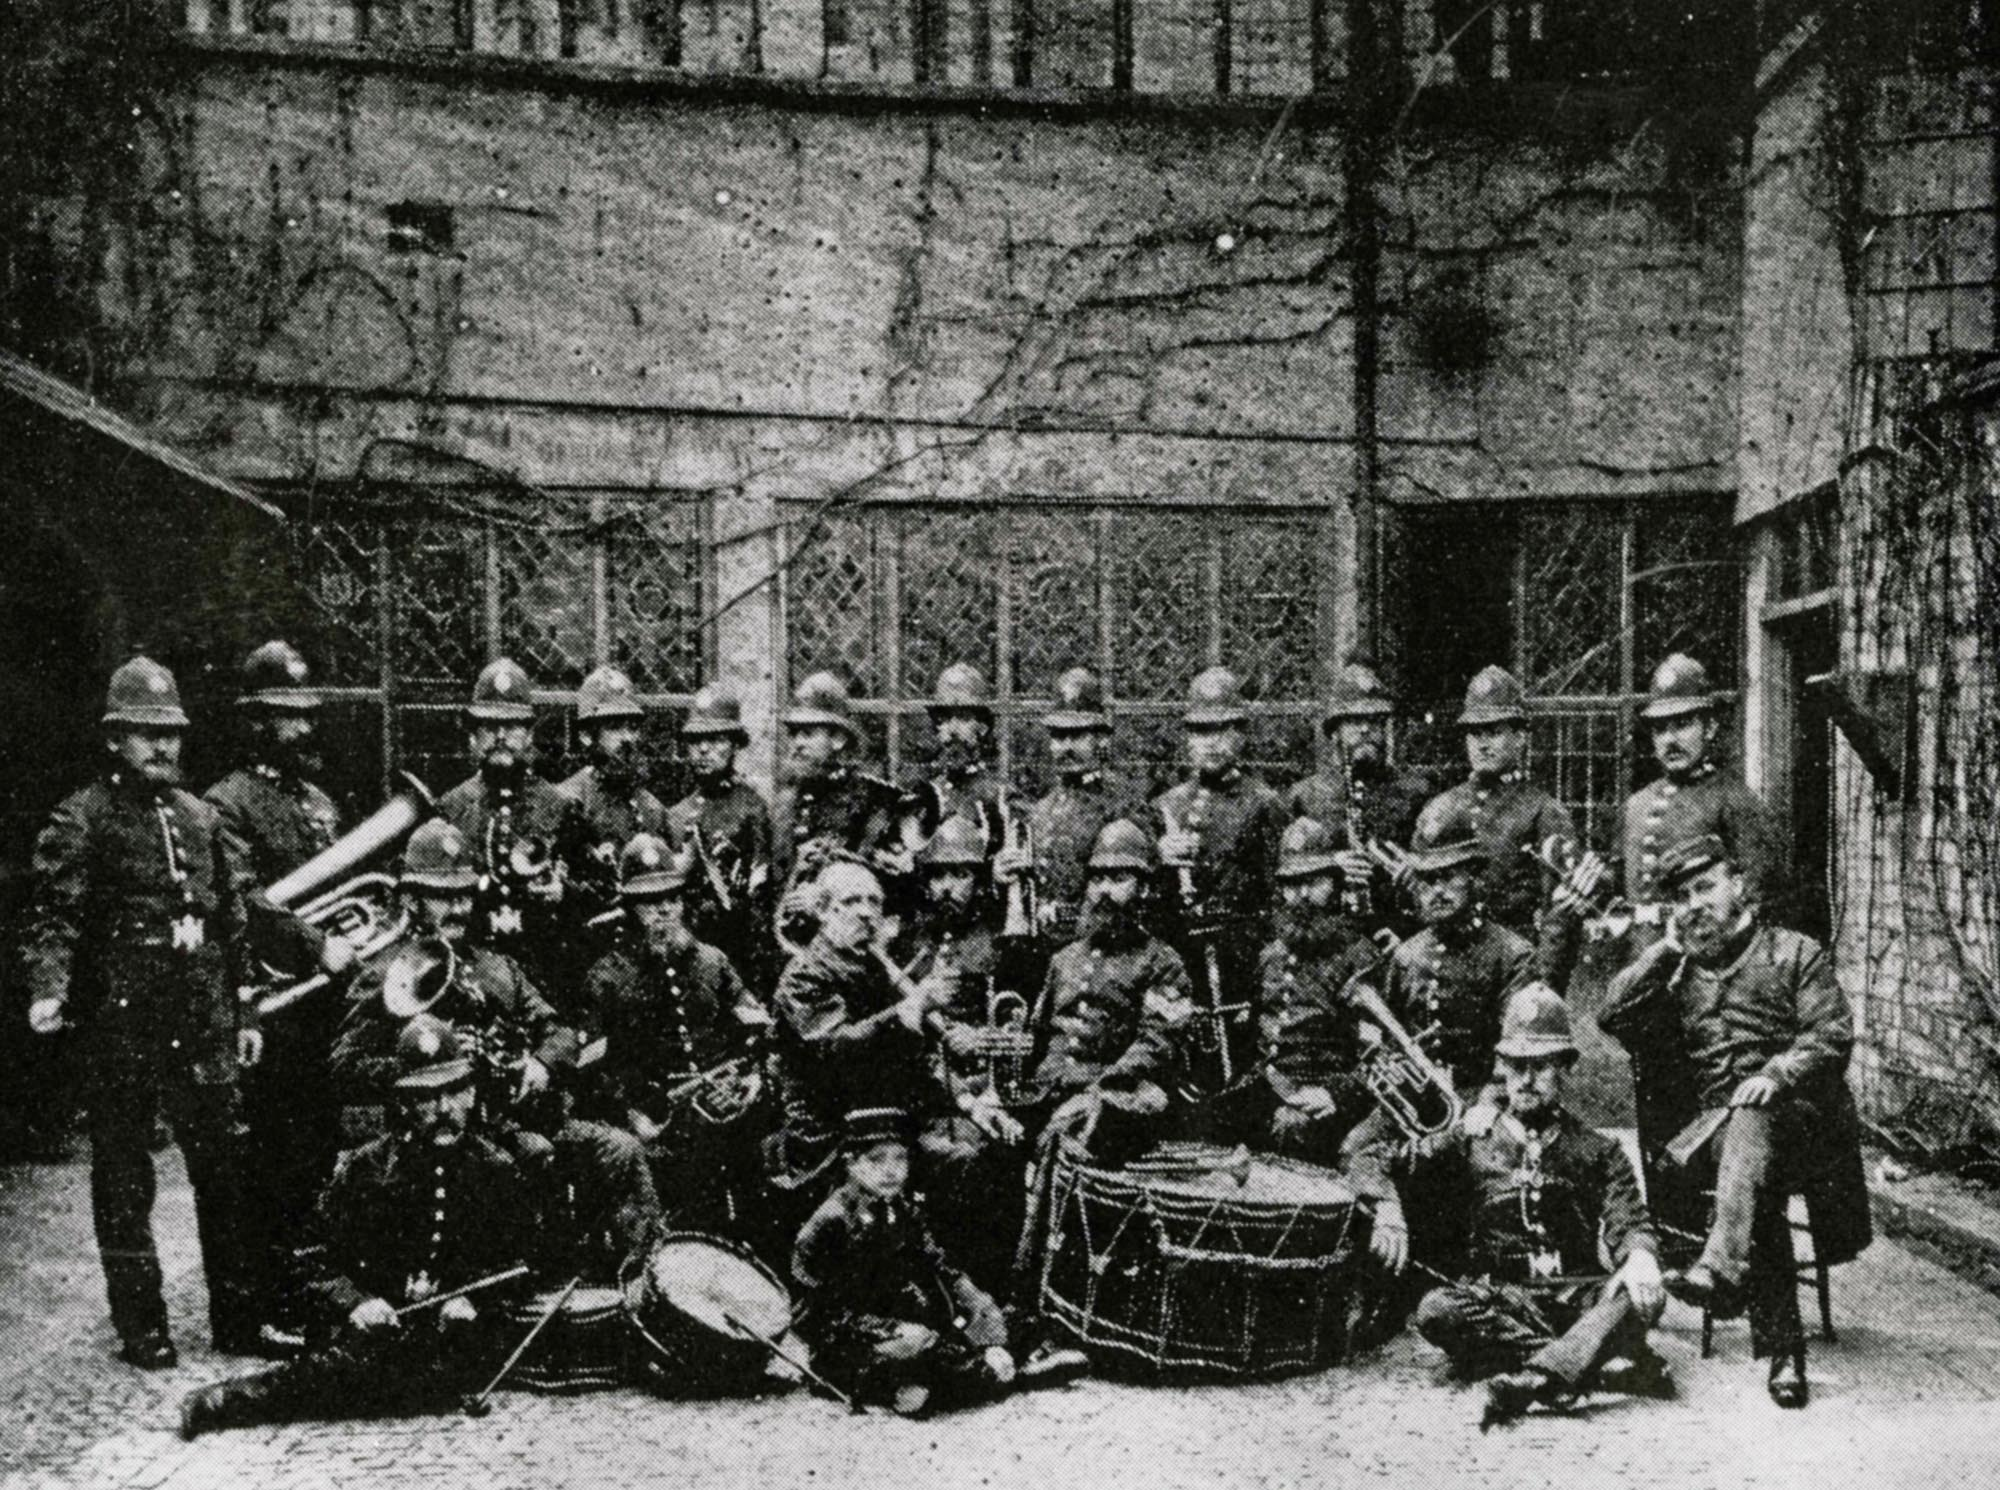 Leicester Borough Police Band, c.1865 in the courtyard of what is now Leicester Guildhall -